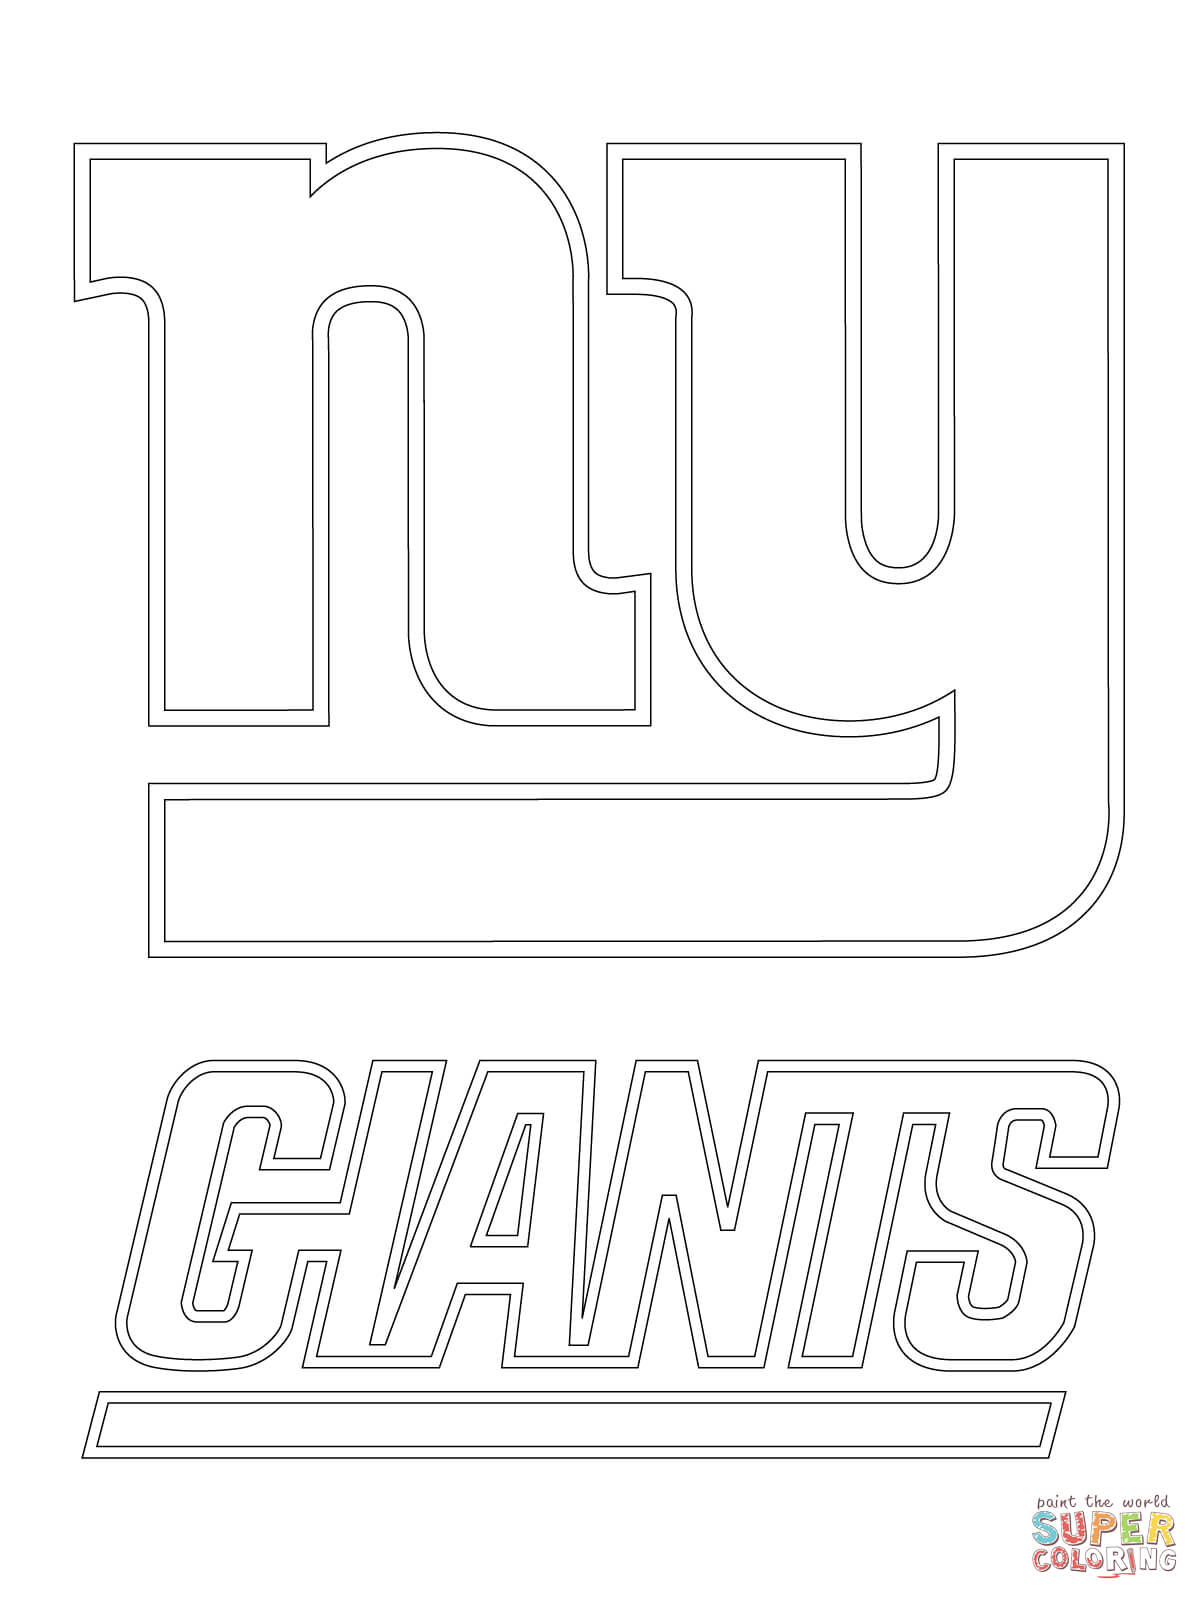 graphic relating to New York Giants Printable Schedule named Refreshing York Giants Symbol Coloring Website page Absolutely free Printable Coloring